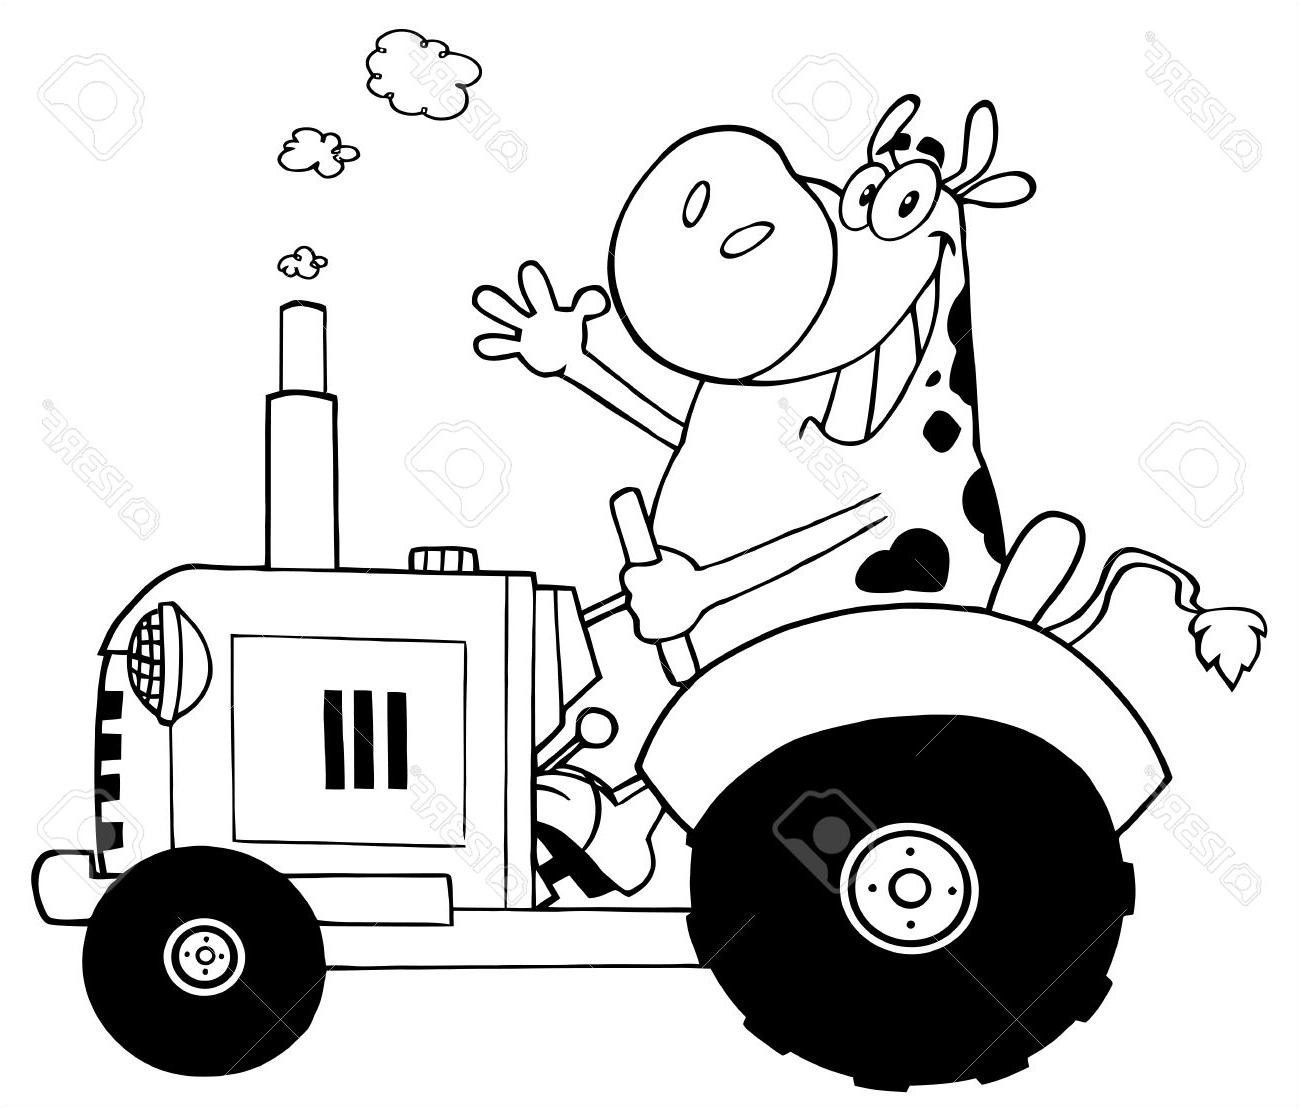 Coloriage Tracteur New Holland Facile Coloriage Tracteur avec Coloriage Tracteur